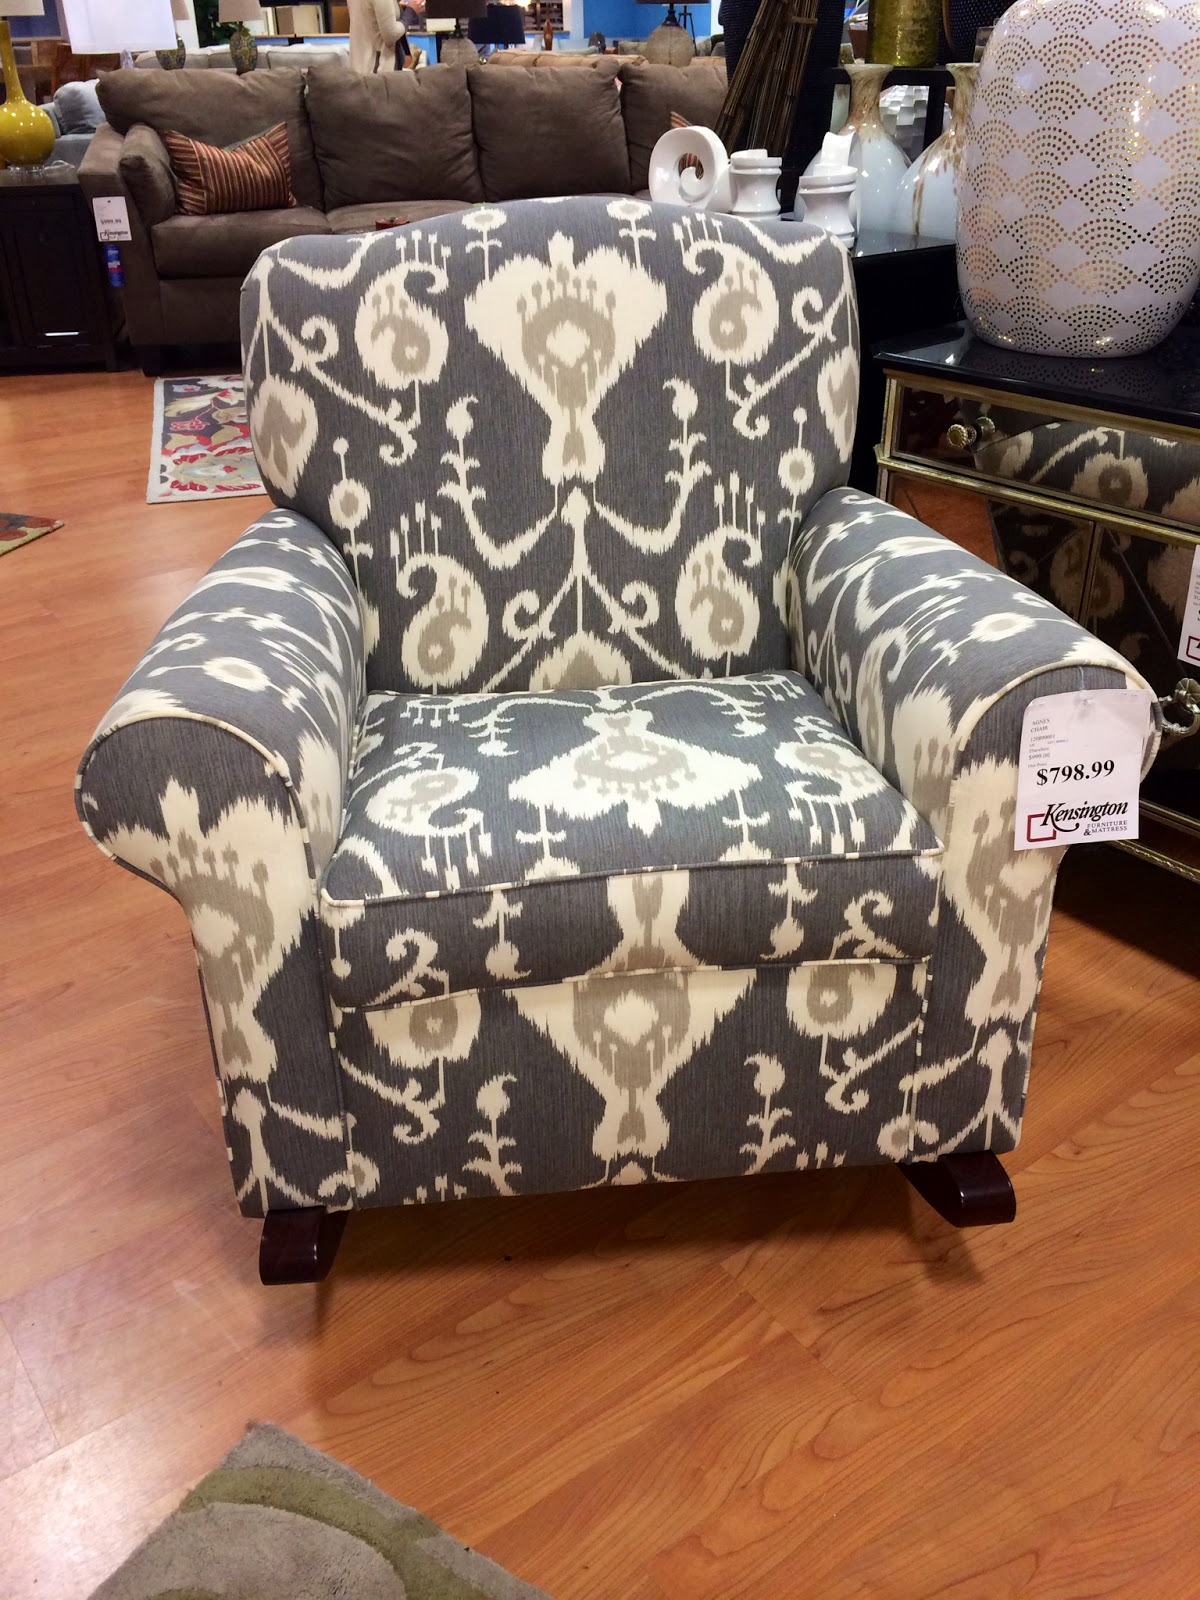 They Are Great For Additional Seating When You Host A Party They Also Take  Up Very Little Space If You Have A Tight Room, Adding Two Accent Chairs  Rather